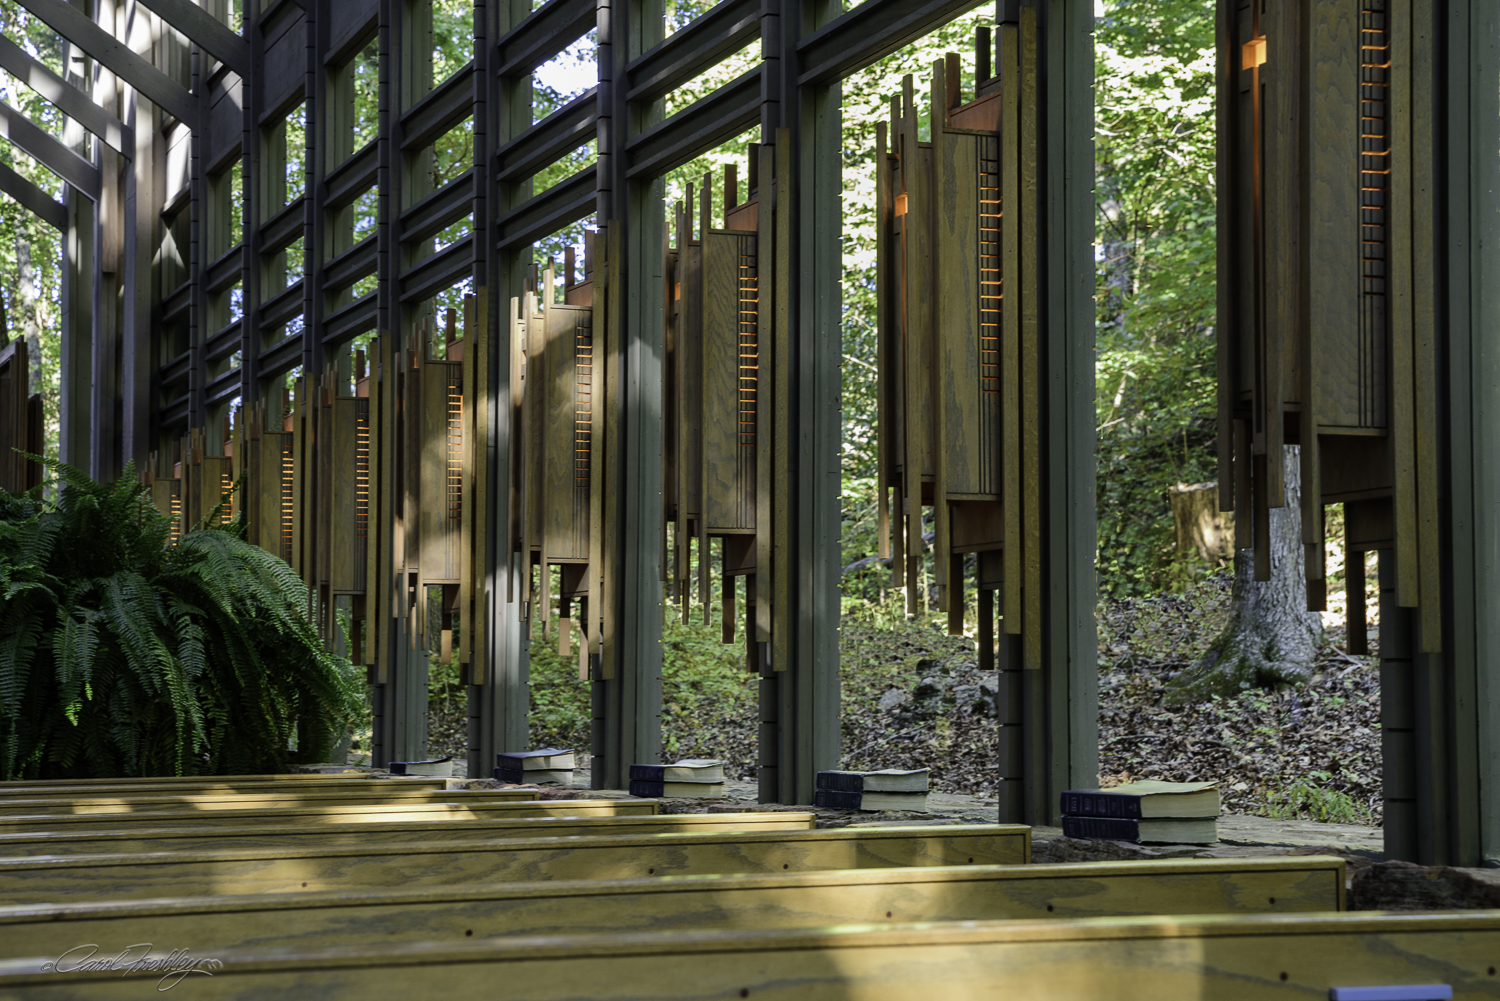 The Chapel is 48 feet in height, has 425 windows and over 6,000 square feet of glass.